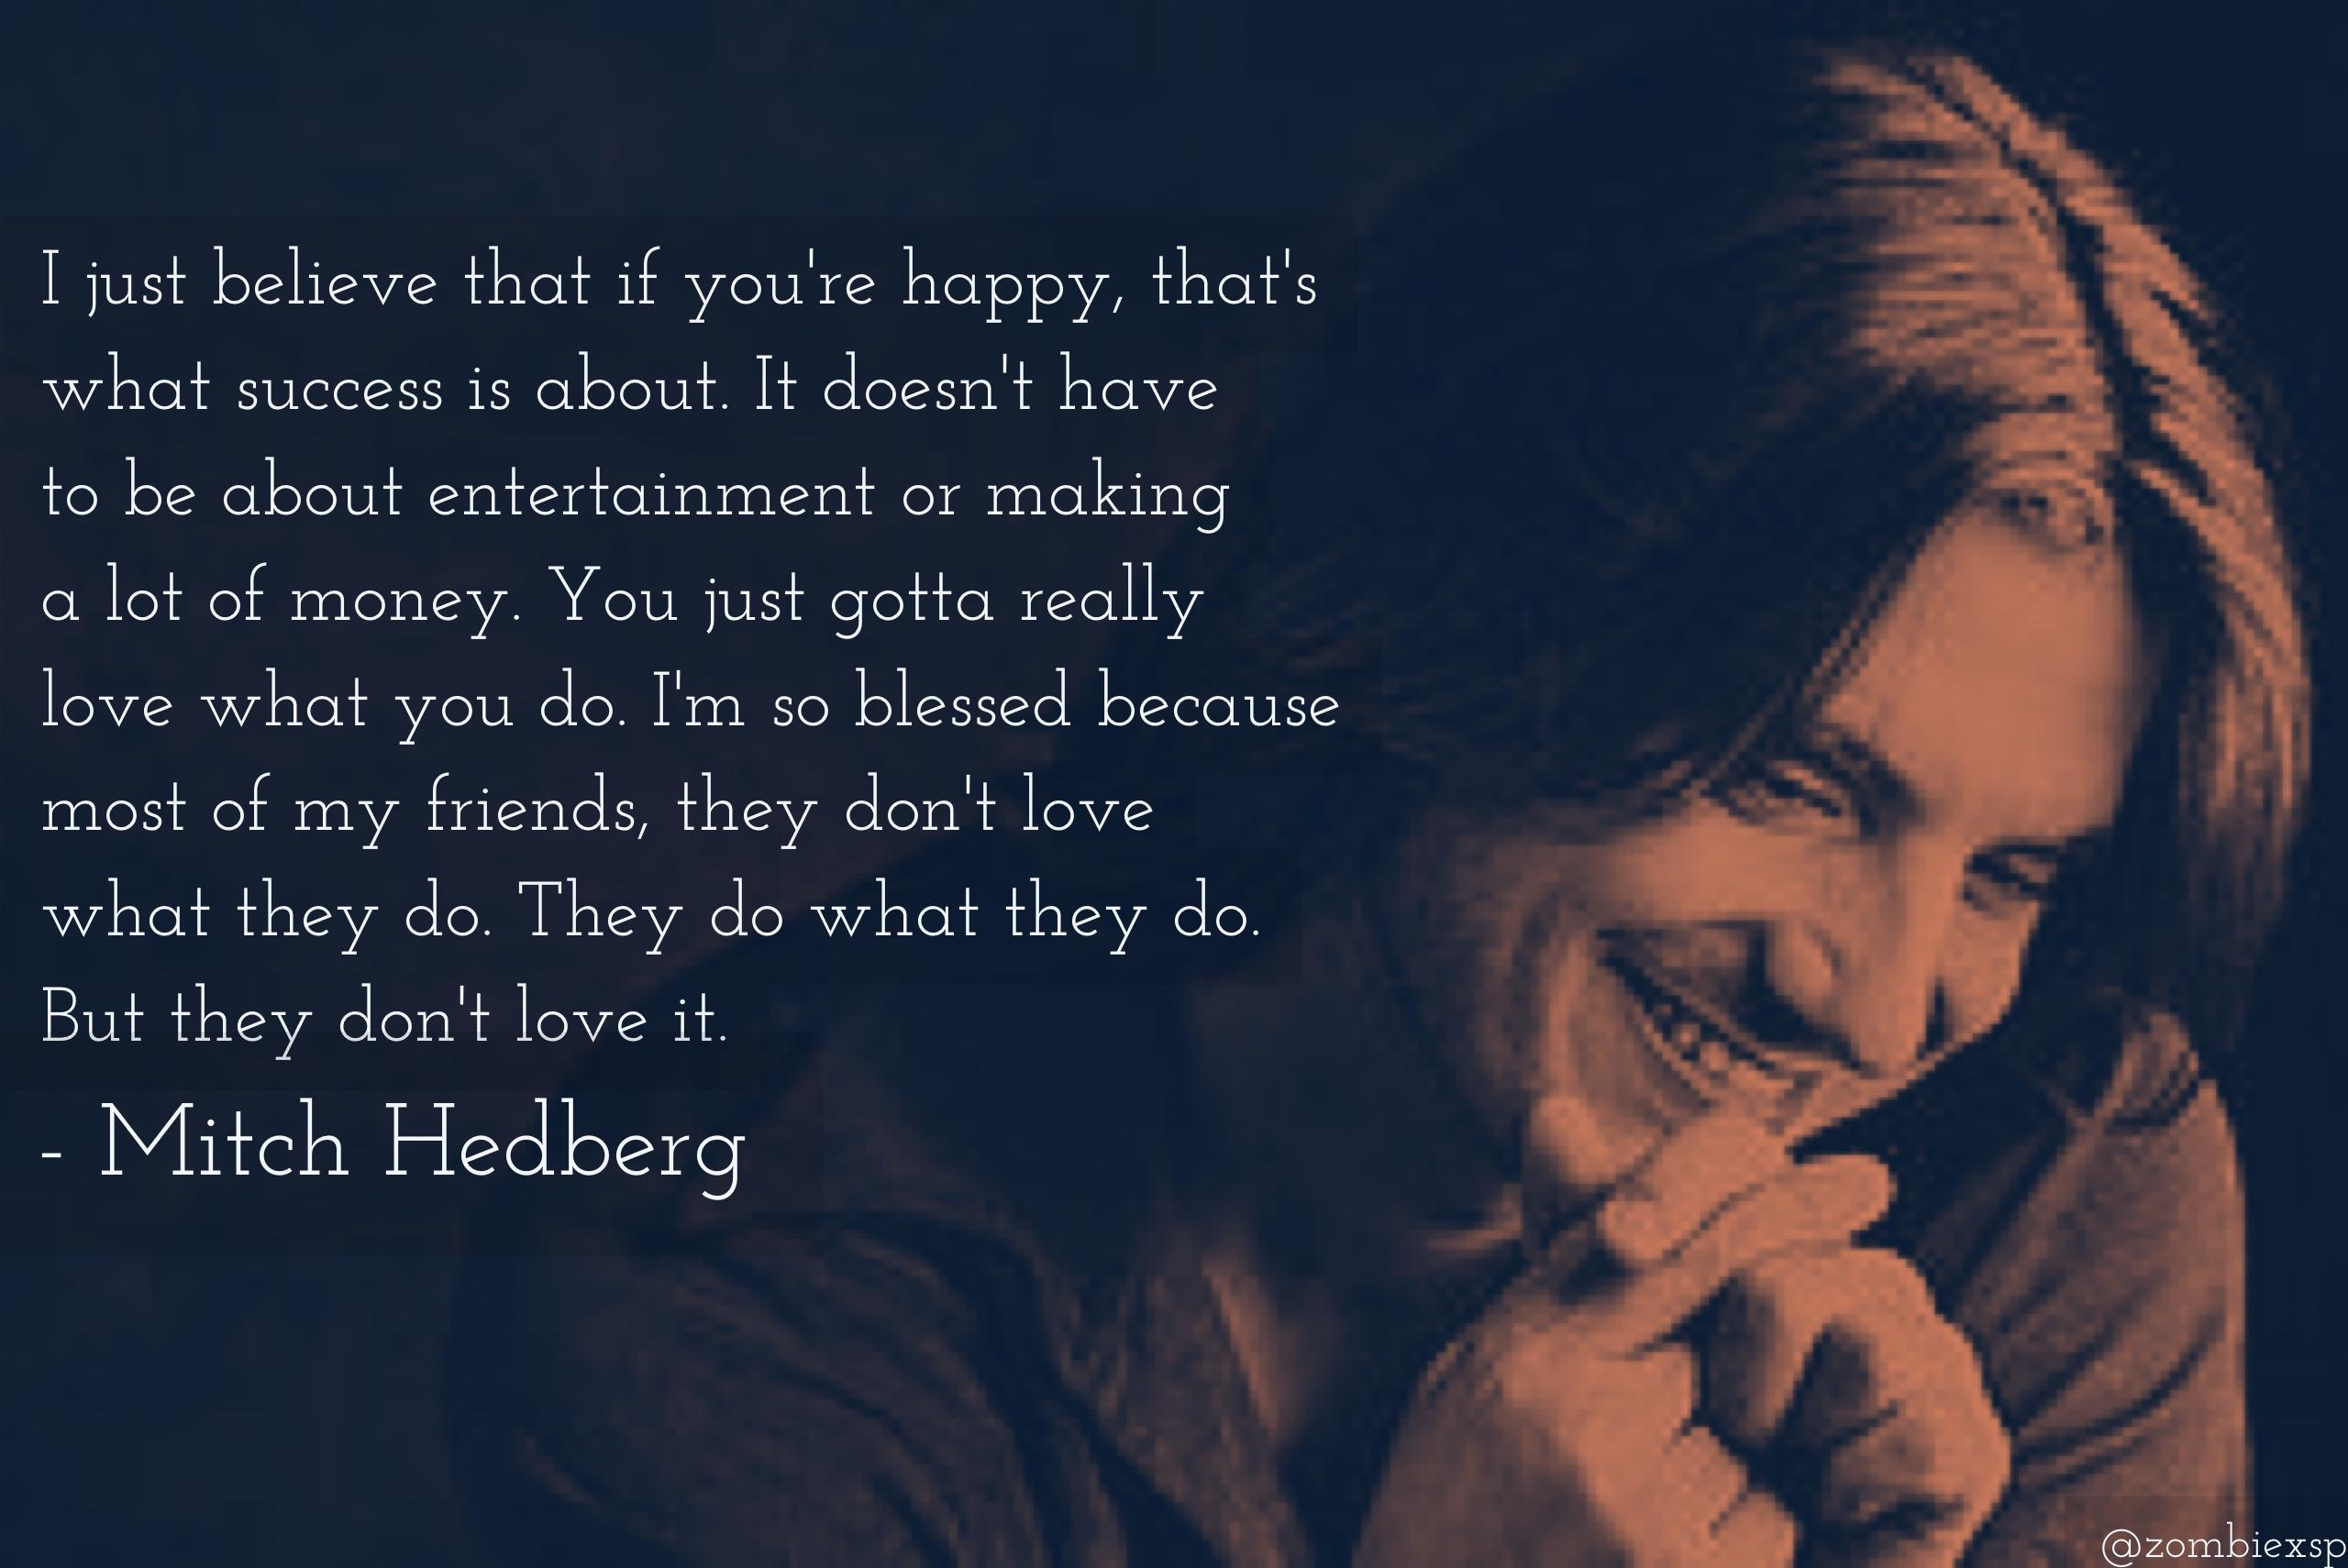 If You're Happy, that's What's Success Is – Mitch Hedberg